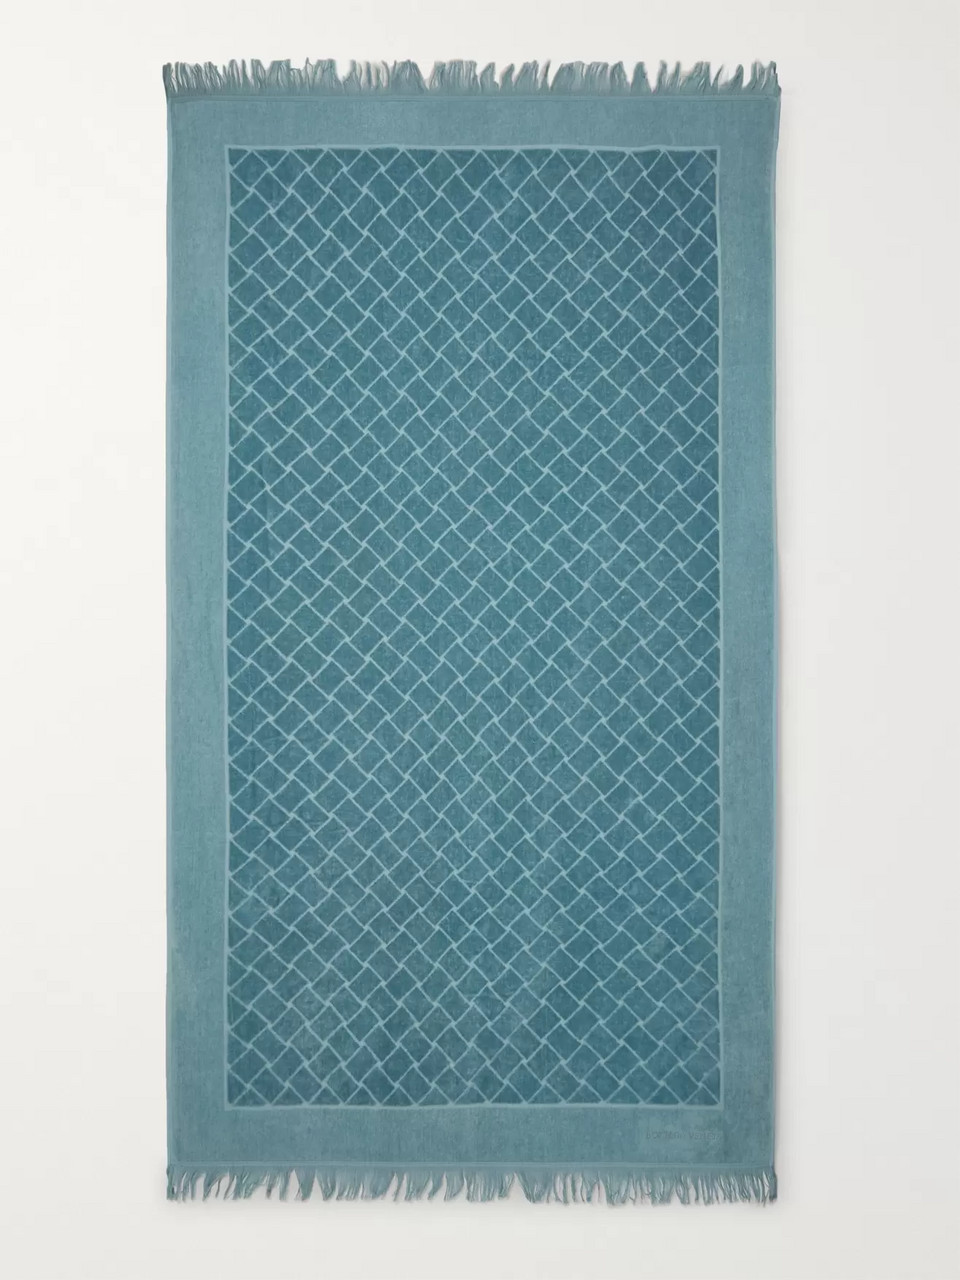 Bottega Veneta Intrecciato Cotton-Terry Beach Towel